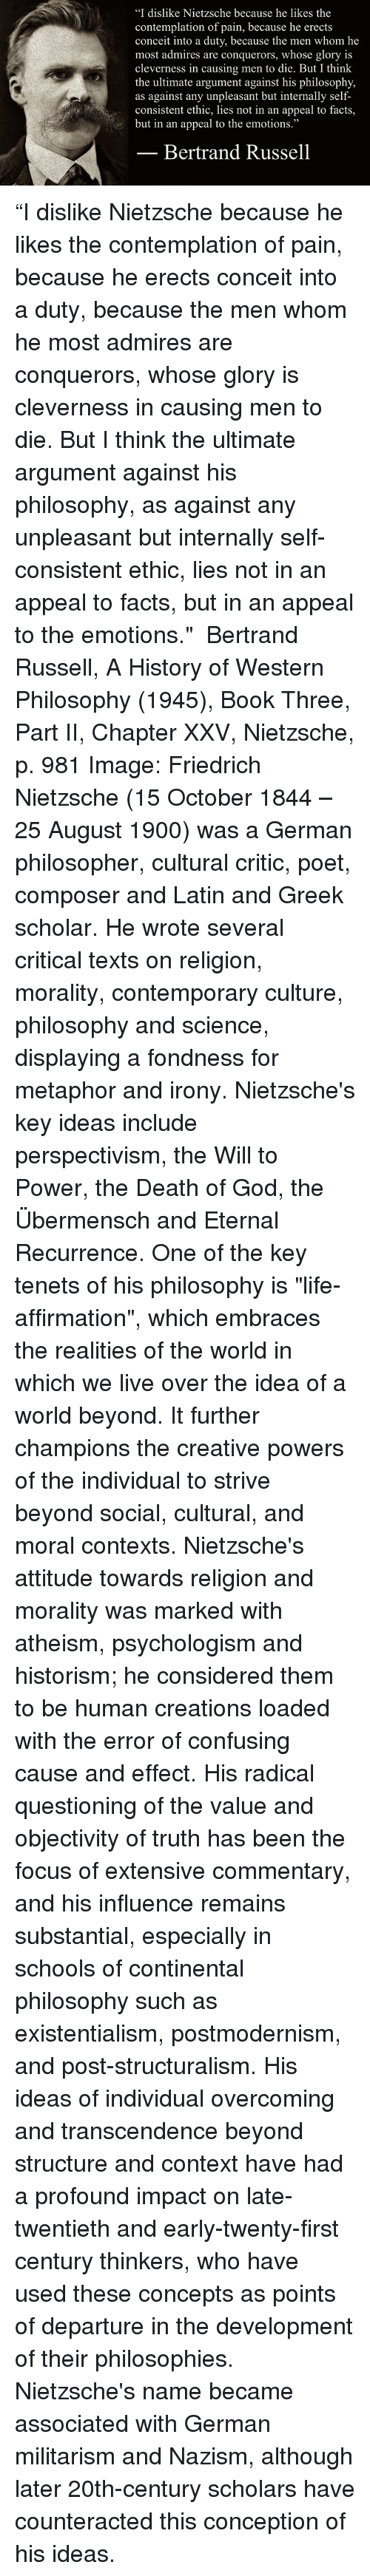 nietzsche's account of power in on Justice, democracy, friedrich nietzsche, the will to power i nietzsche thinks of  justice in the same way as heraclitus and plato – it is the principle of the utmost.